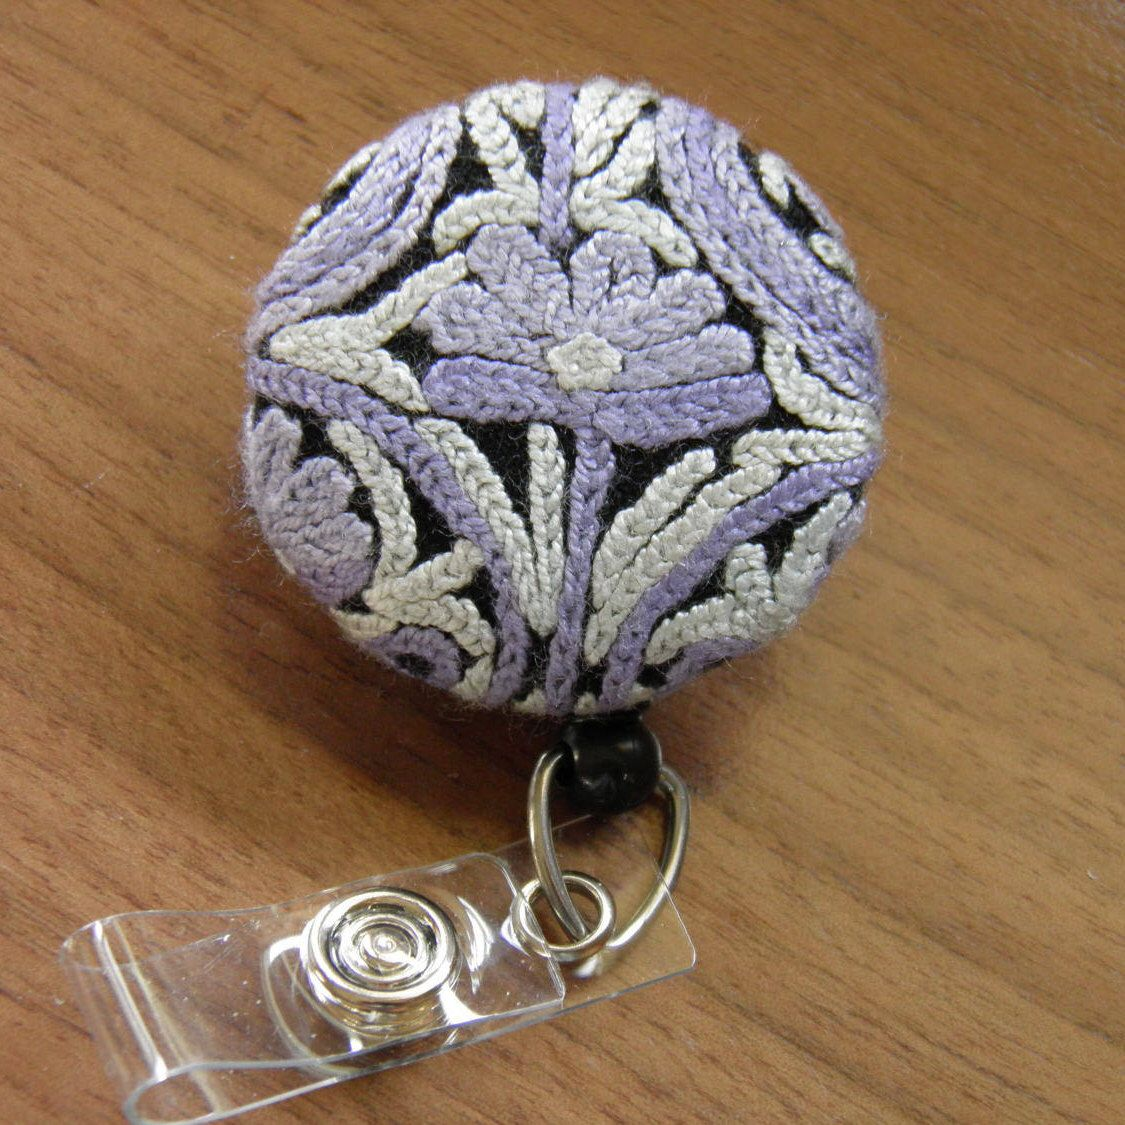 Embroidered Badge Reel , ID holder by ChangeYourBadge on Etsy https://www.etsy.com/listing/520593259/embroidered-badge-reel-id-holder